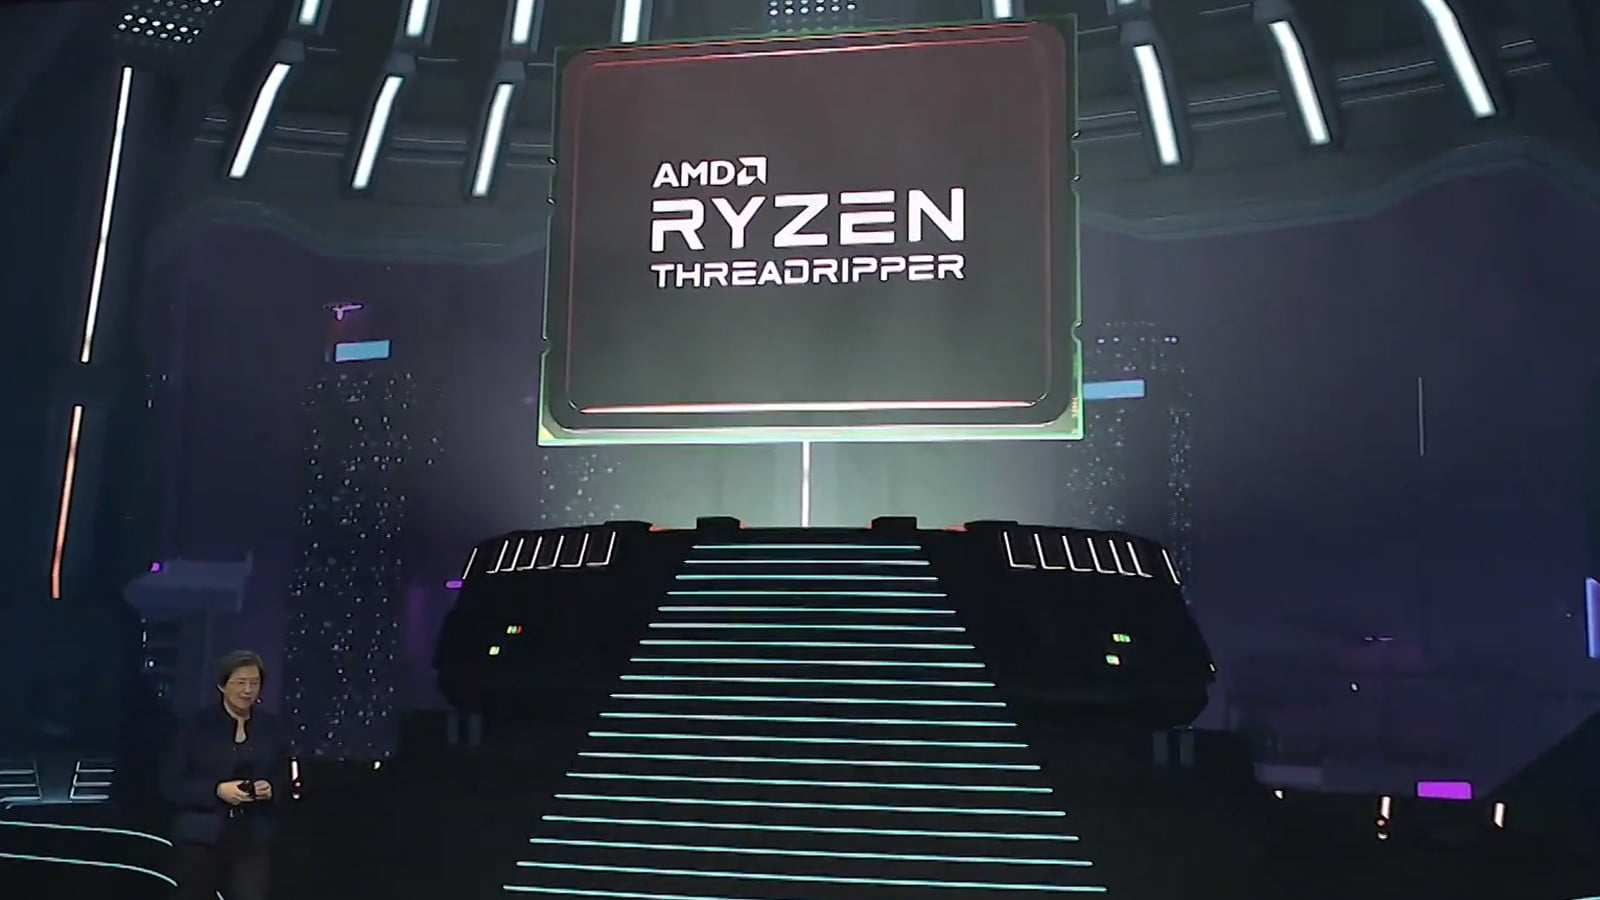 Threadripper 3990X smashes its way on stage at CES with 64 cores and 128 threads